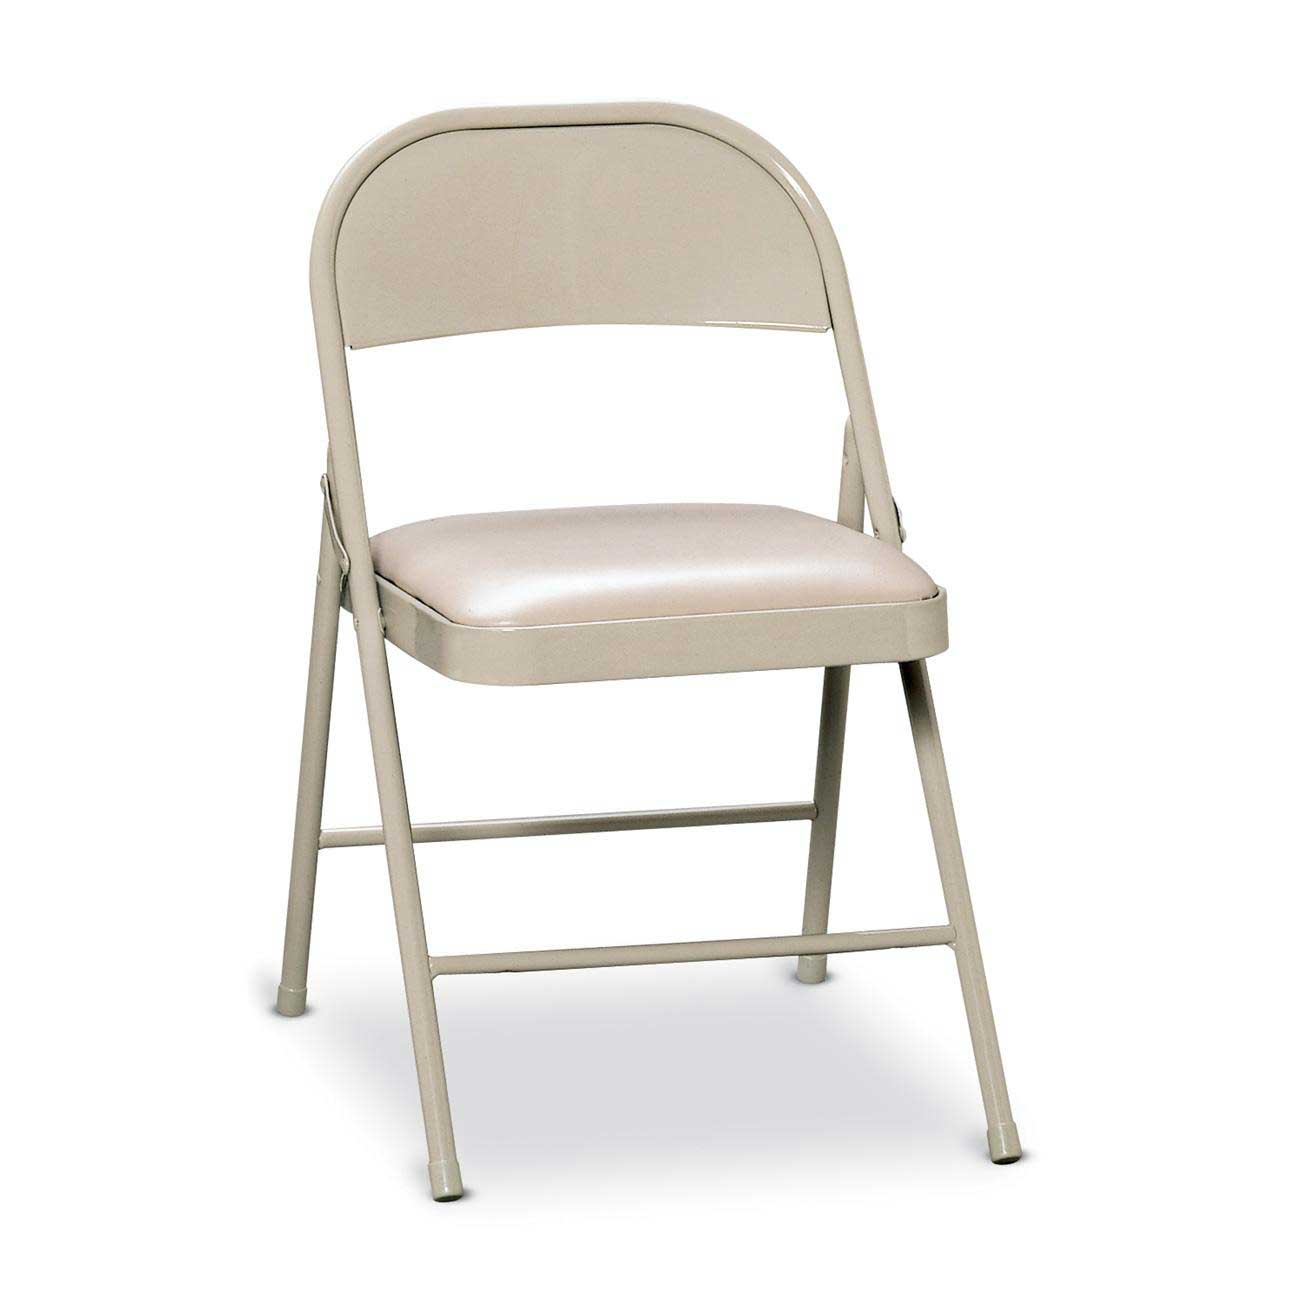 White Metal Chair Folding Padded Chairs Style And Design